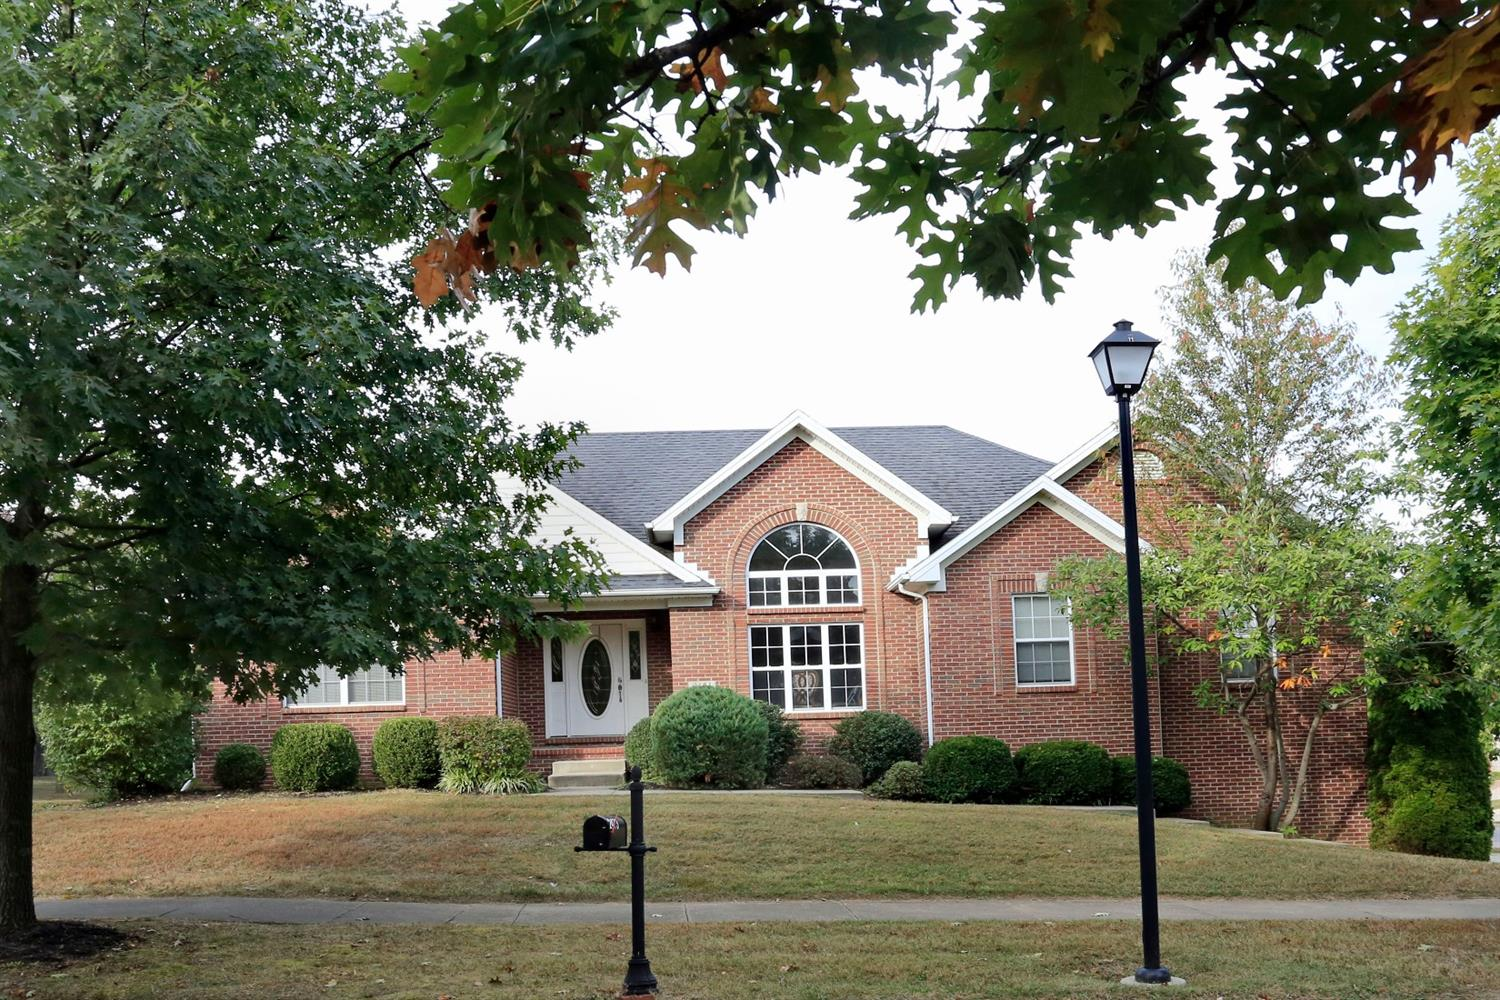 Home For Sale at 2344 Rockminster Rd, Lexington, KY 40509